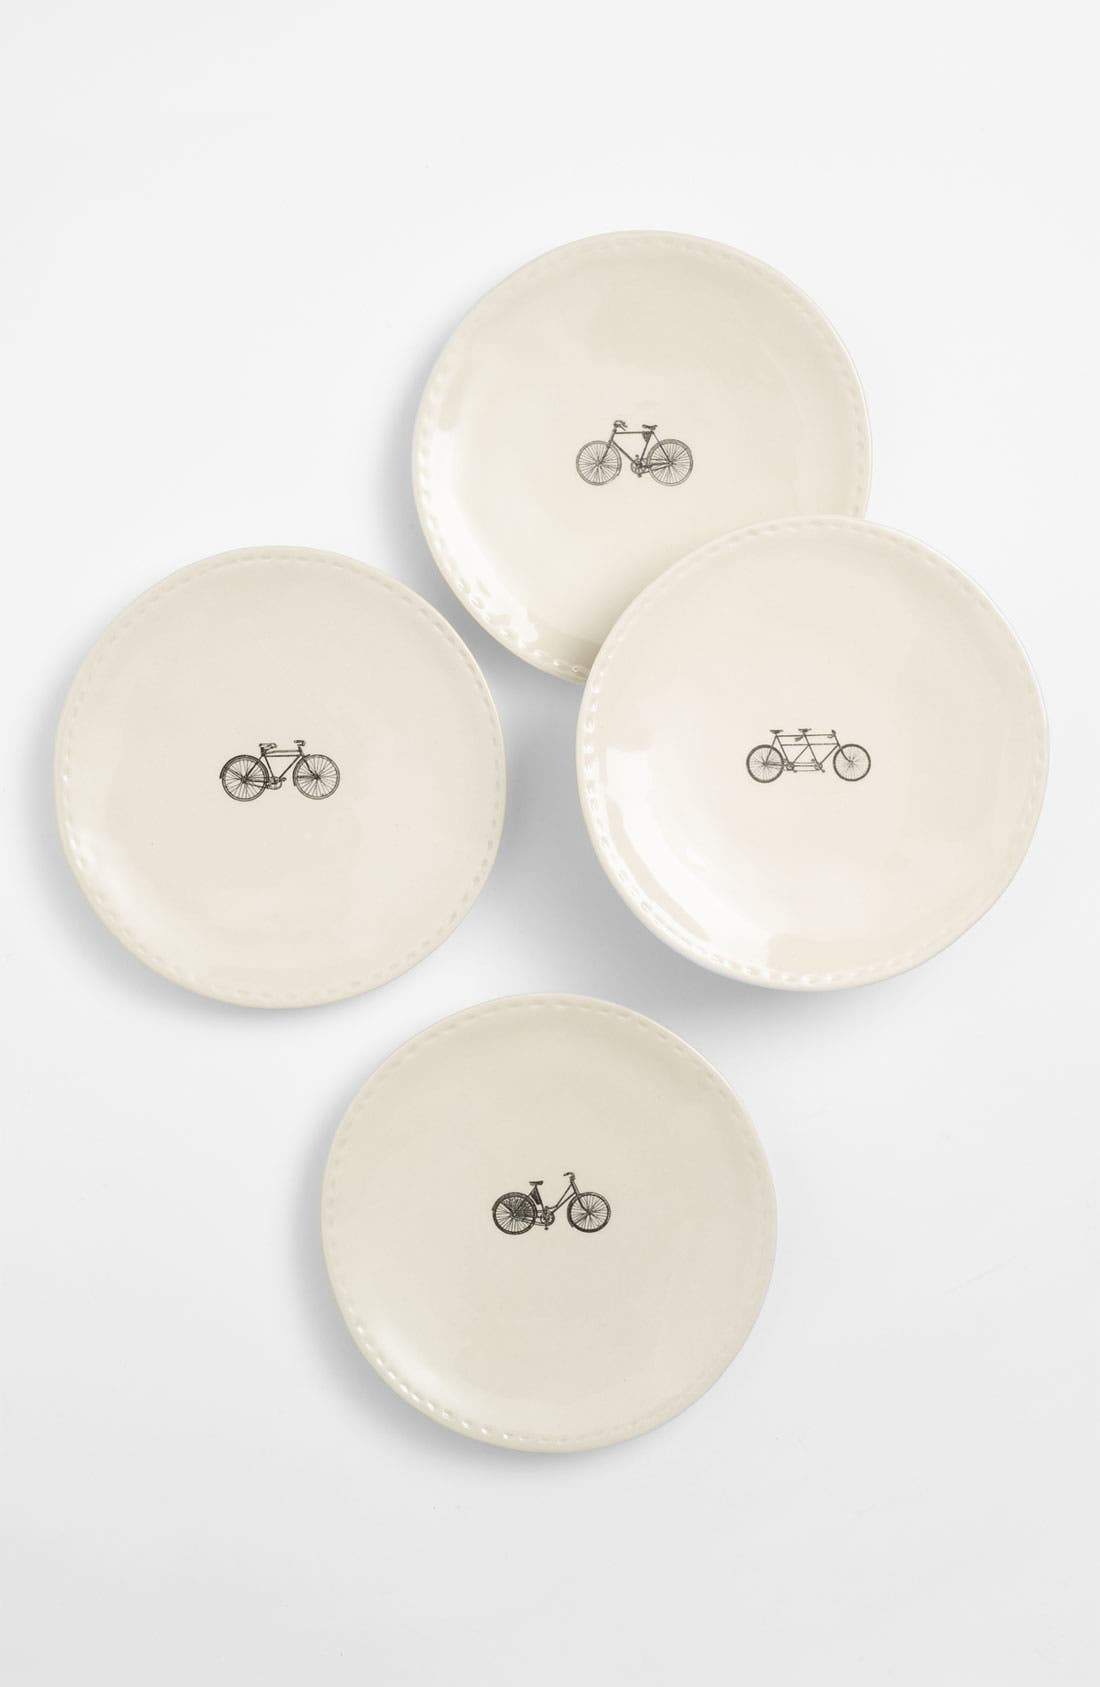 Alternate Image 1 Selected - Rae Dunn by Magenta Bike Plates (Set of 4)